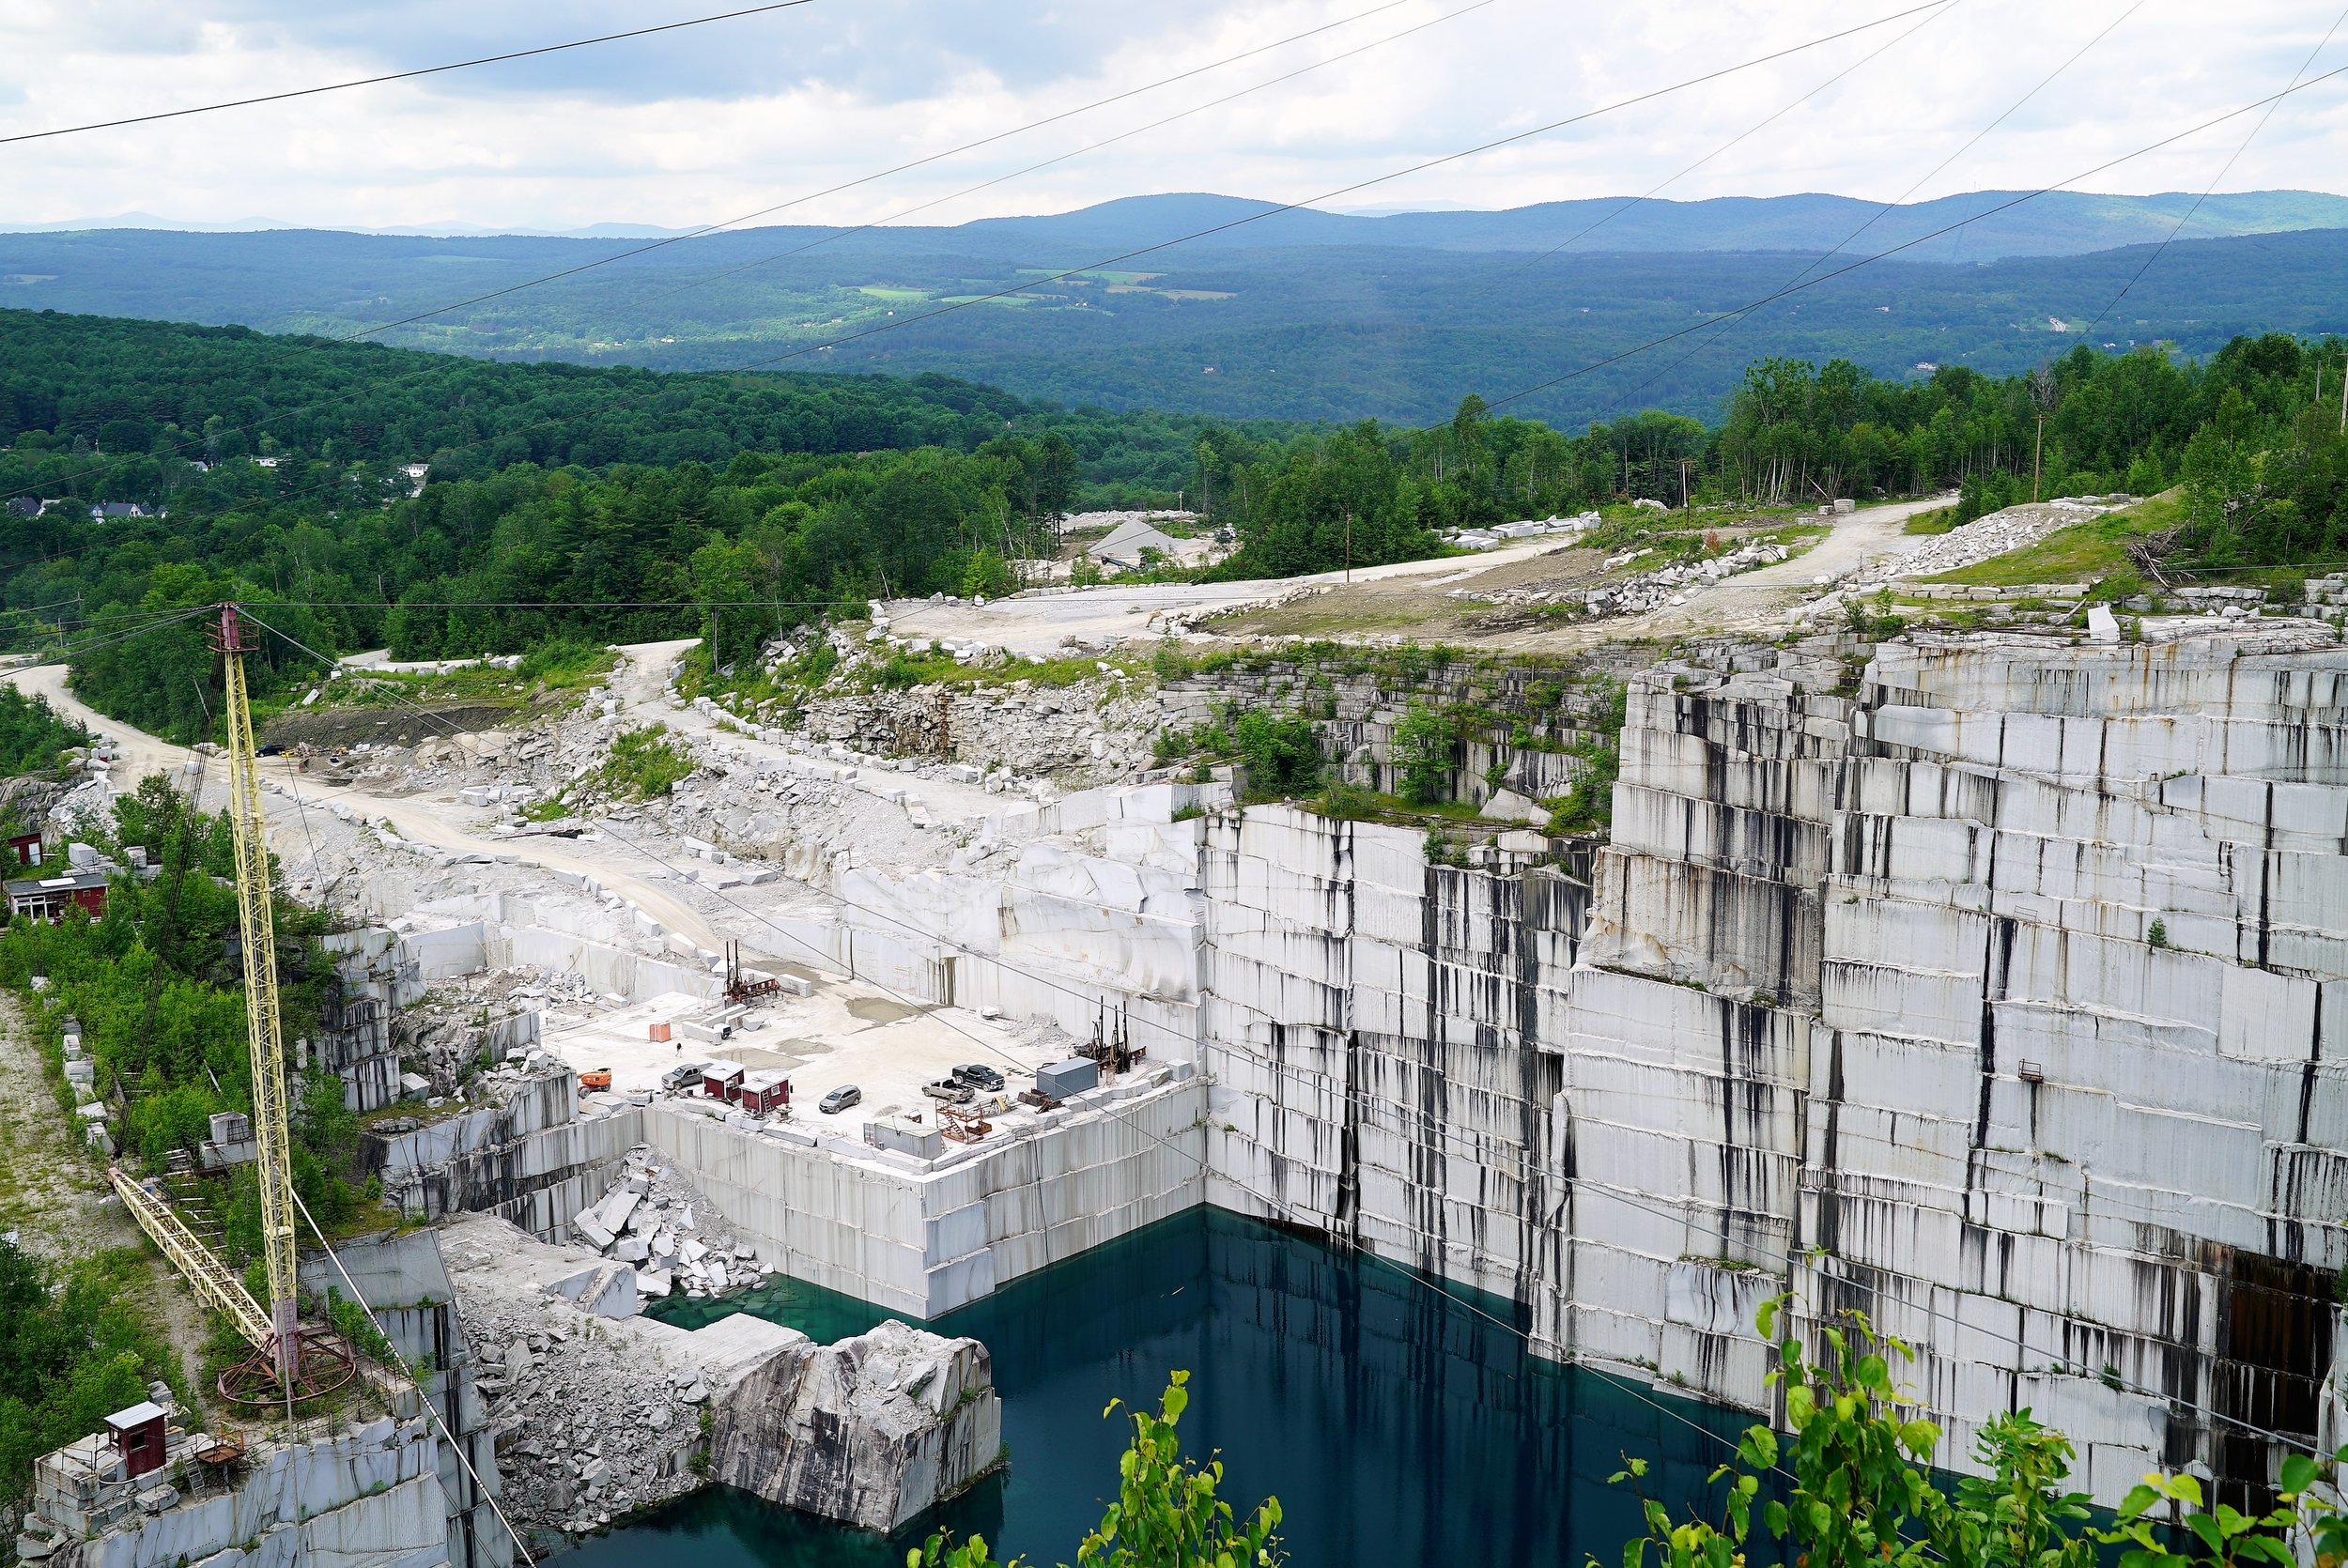 One of the granite quarries in the Barre, Vermont area. Unusual fact... That water is 250 feet deep.